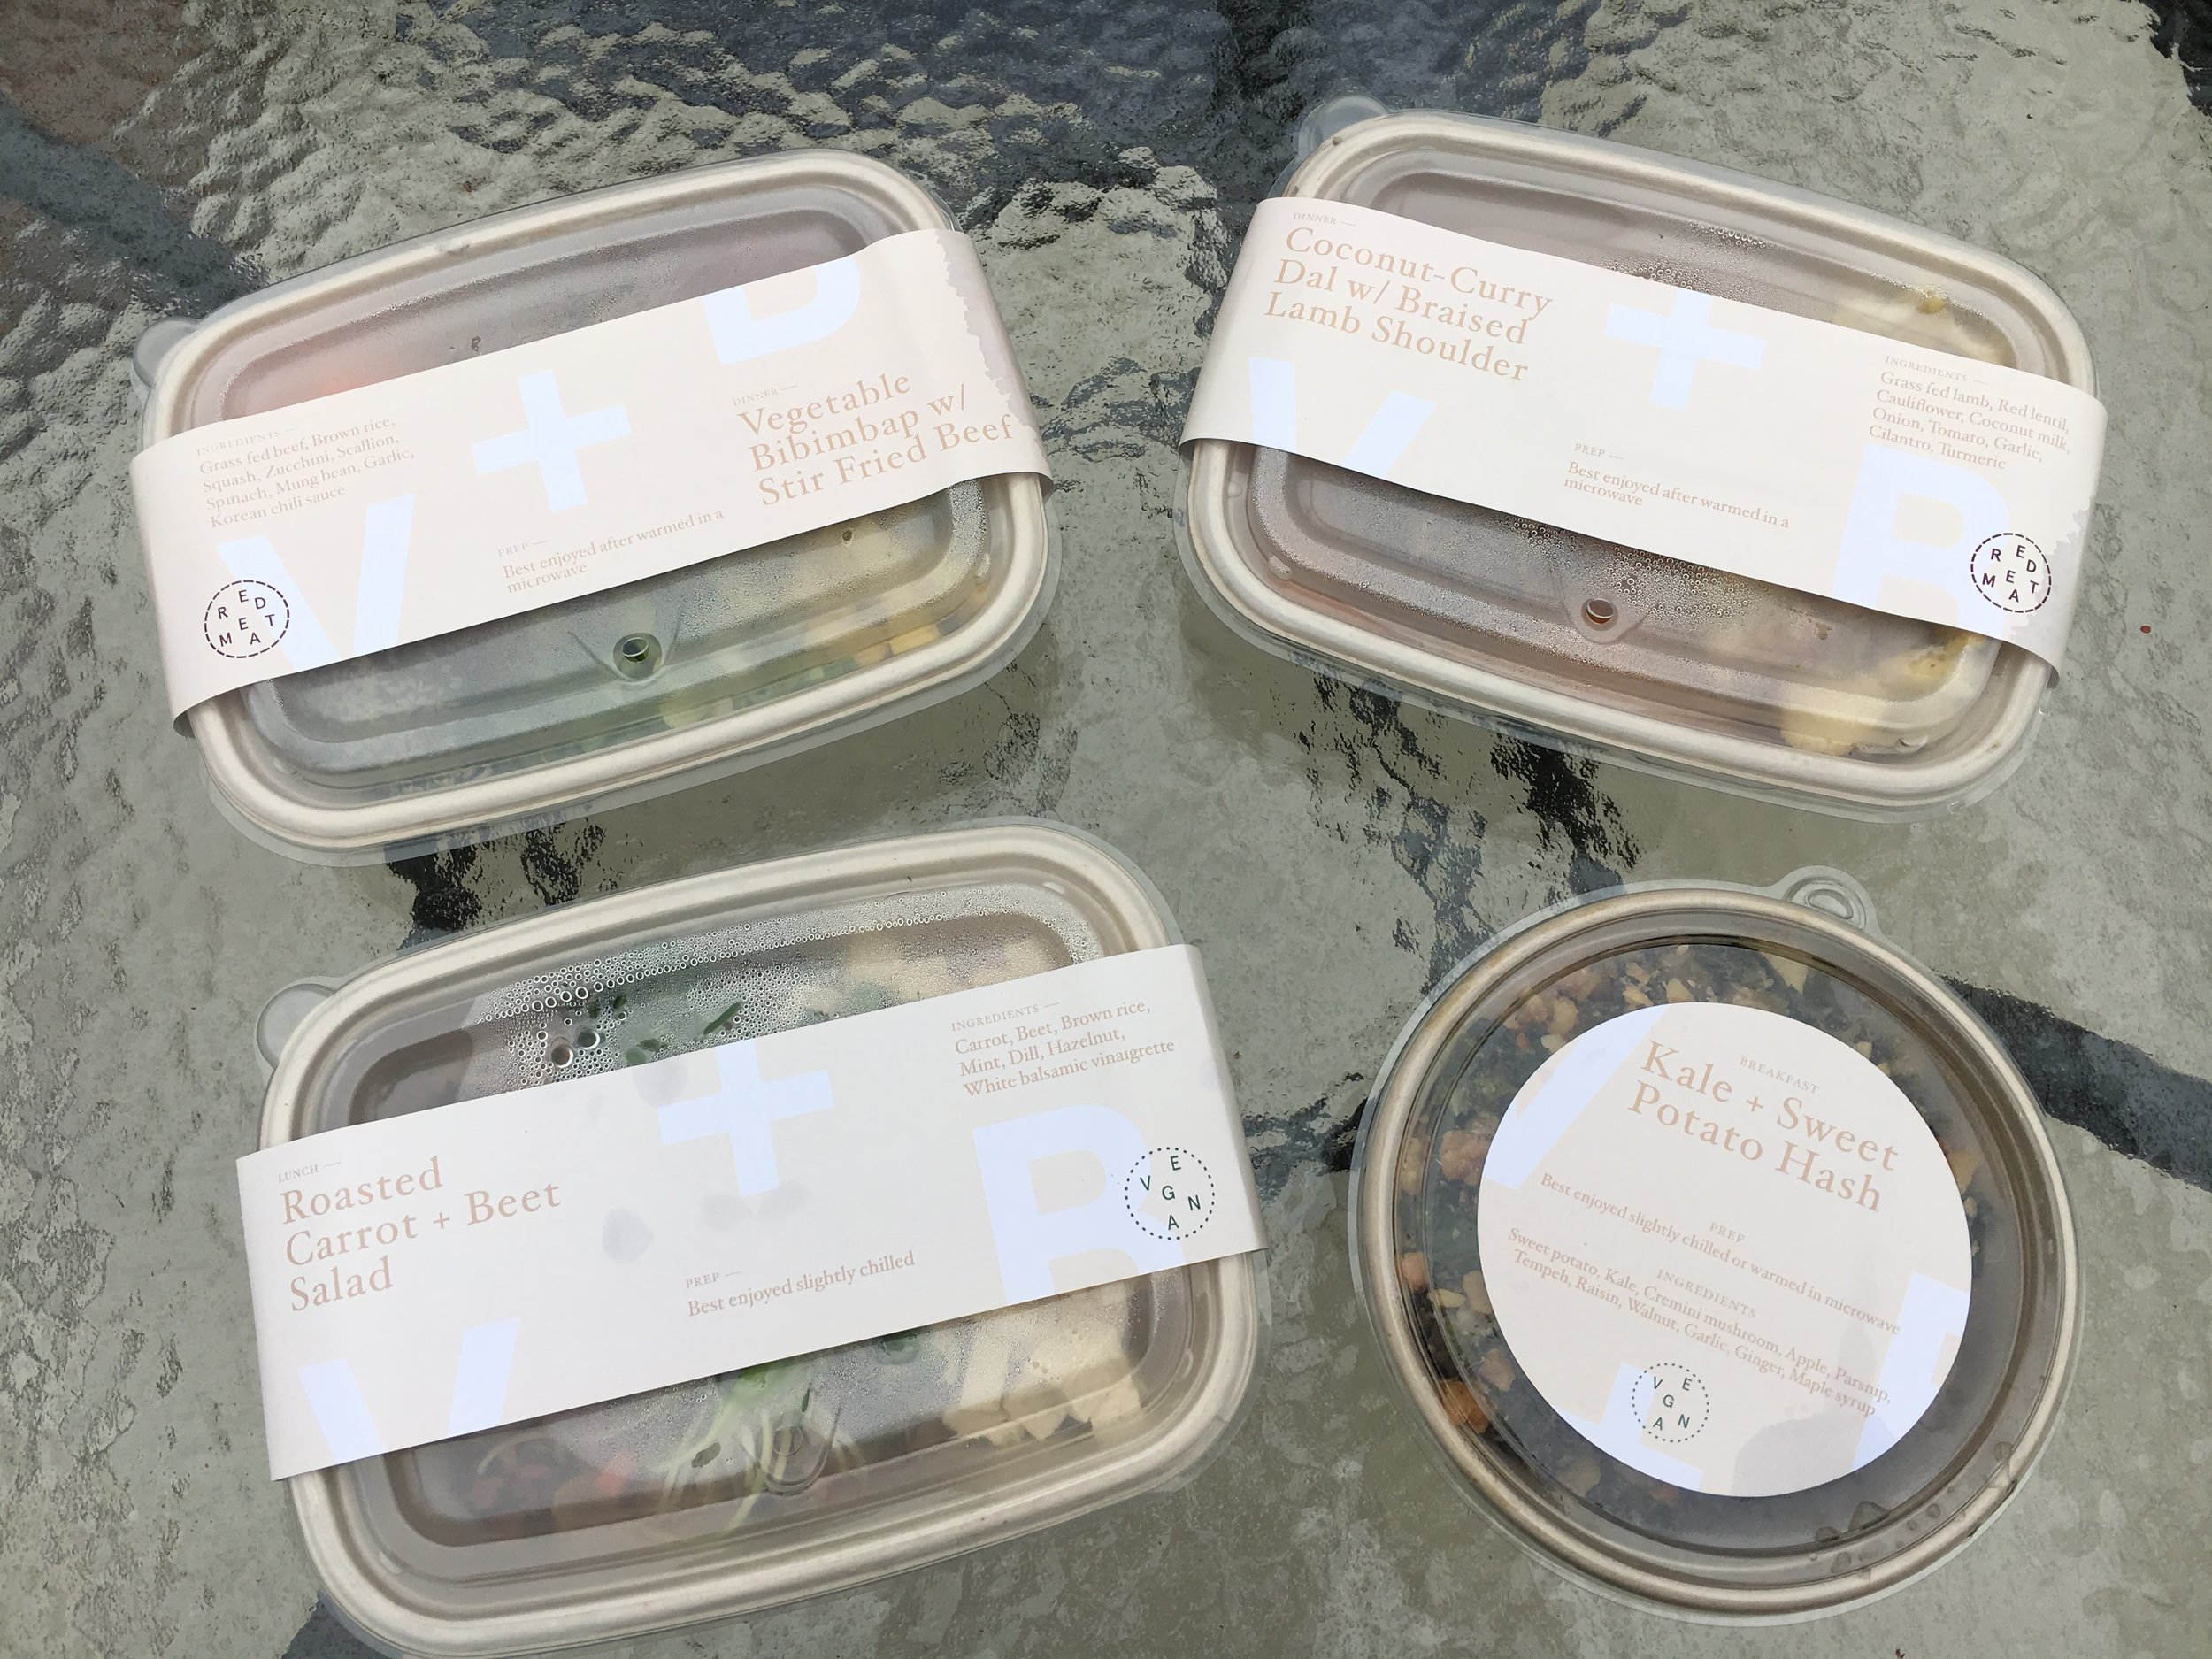 Each meal is clearly labeled with every ingredient and preparation instructions.